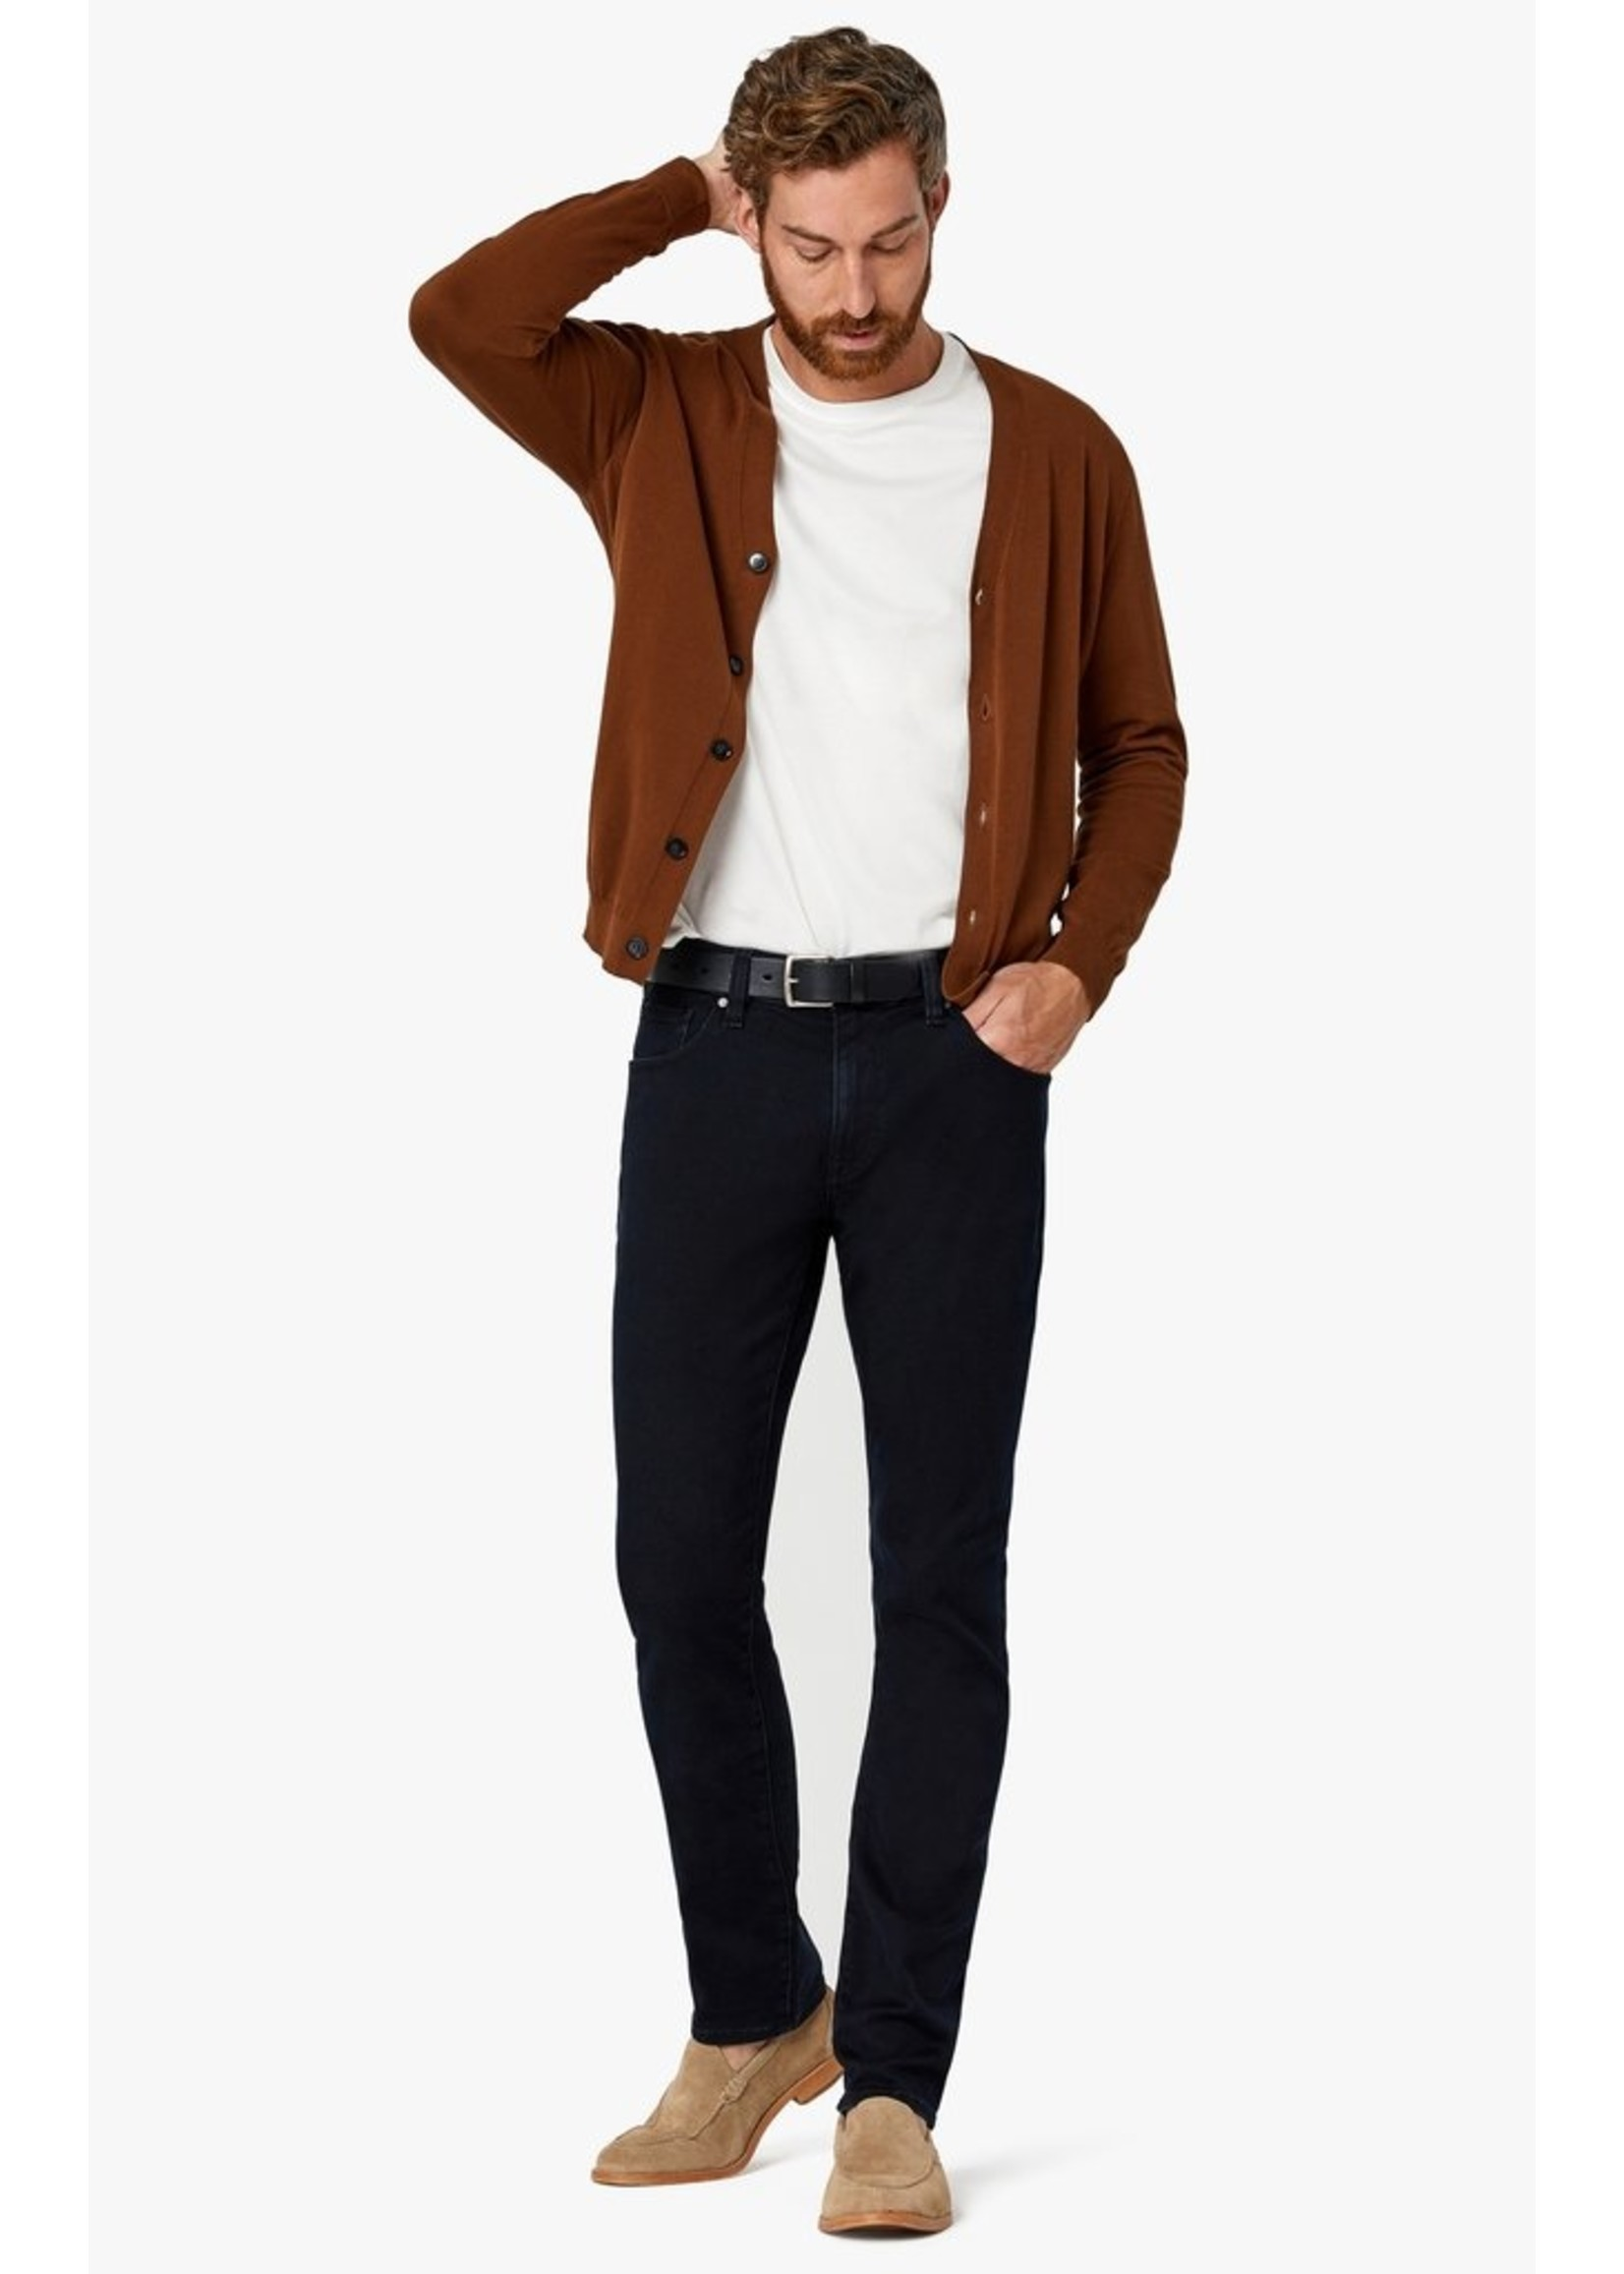 34 Heritage Jean Courage Fit